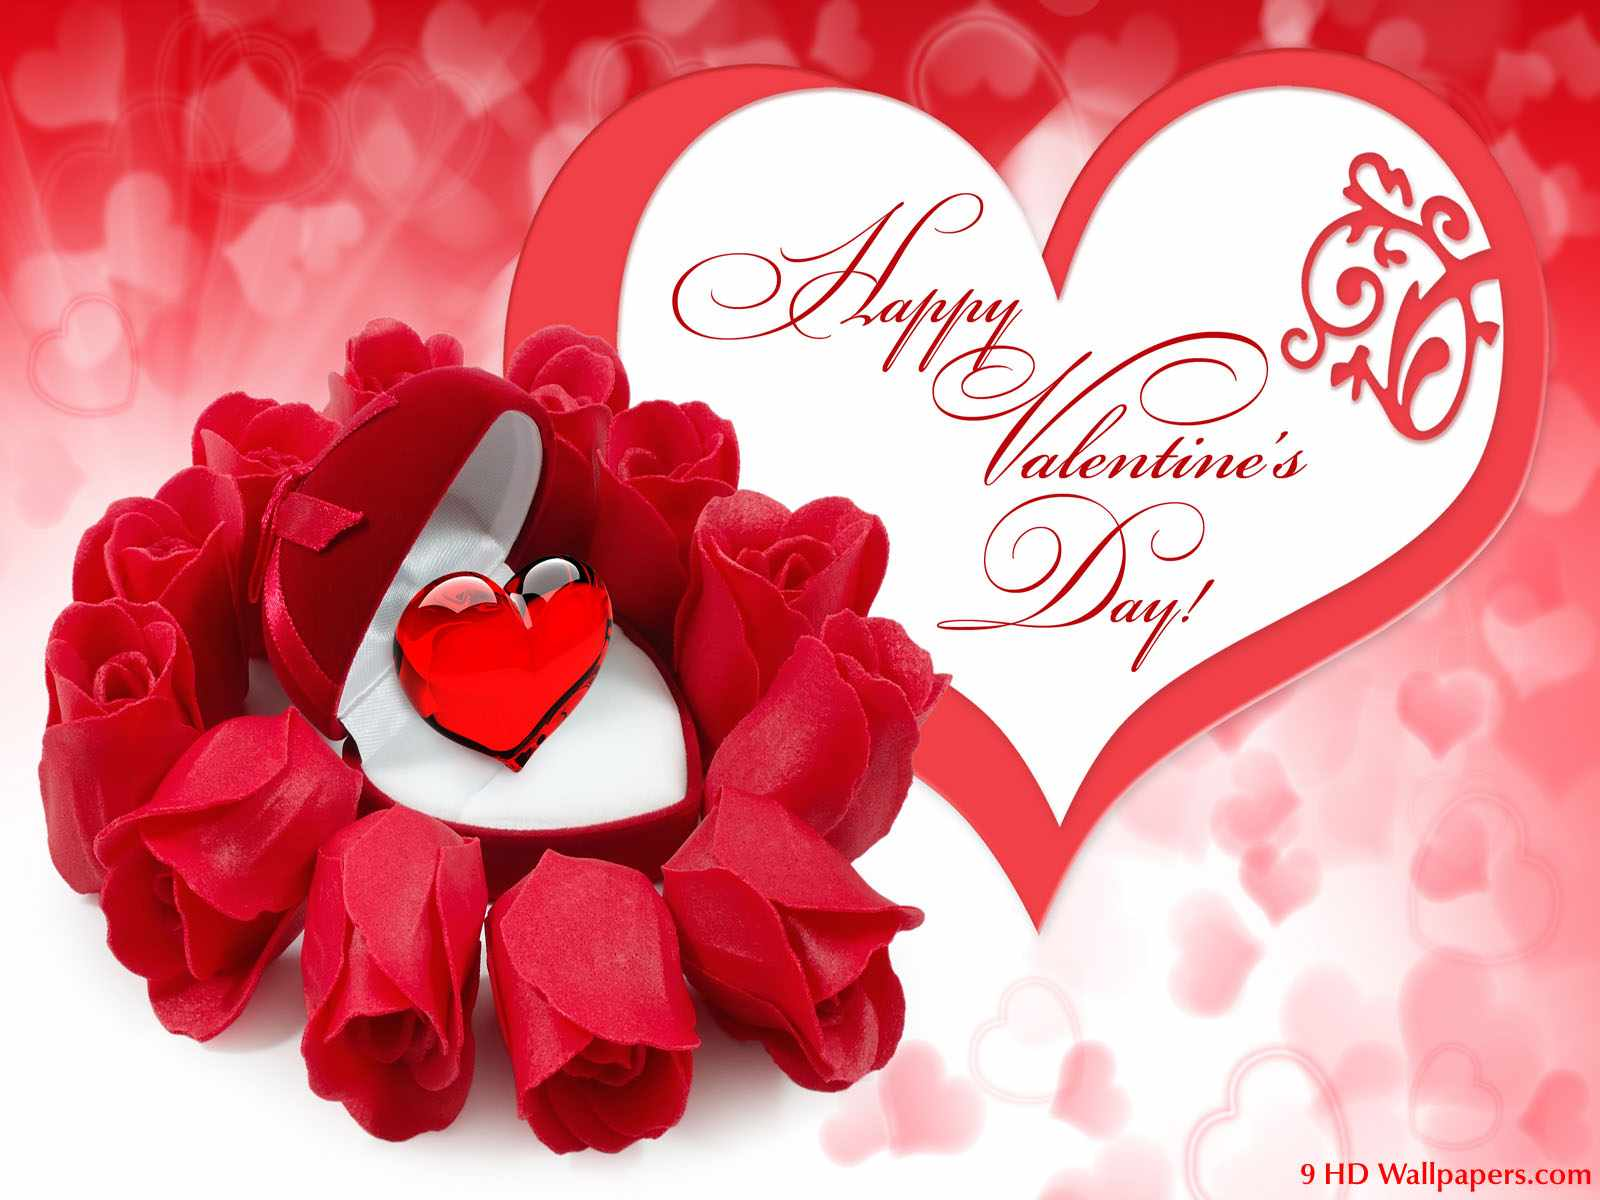 top 3 valentines day miss you sms for girlfriend boyfriend - Valentines Text Messages